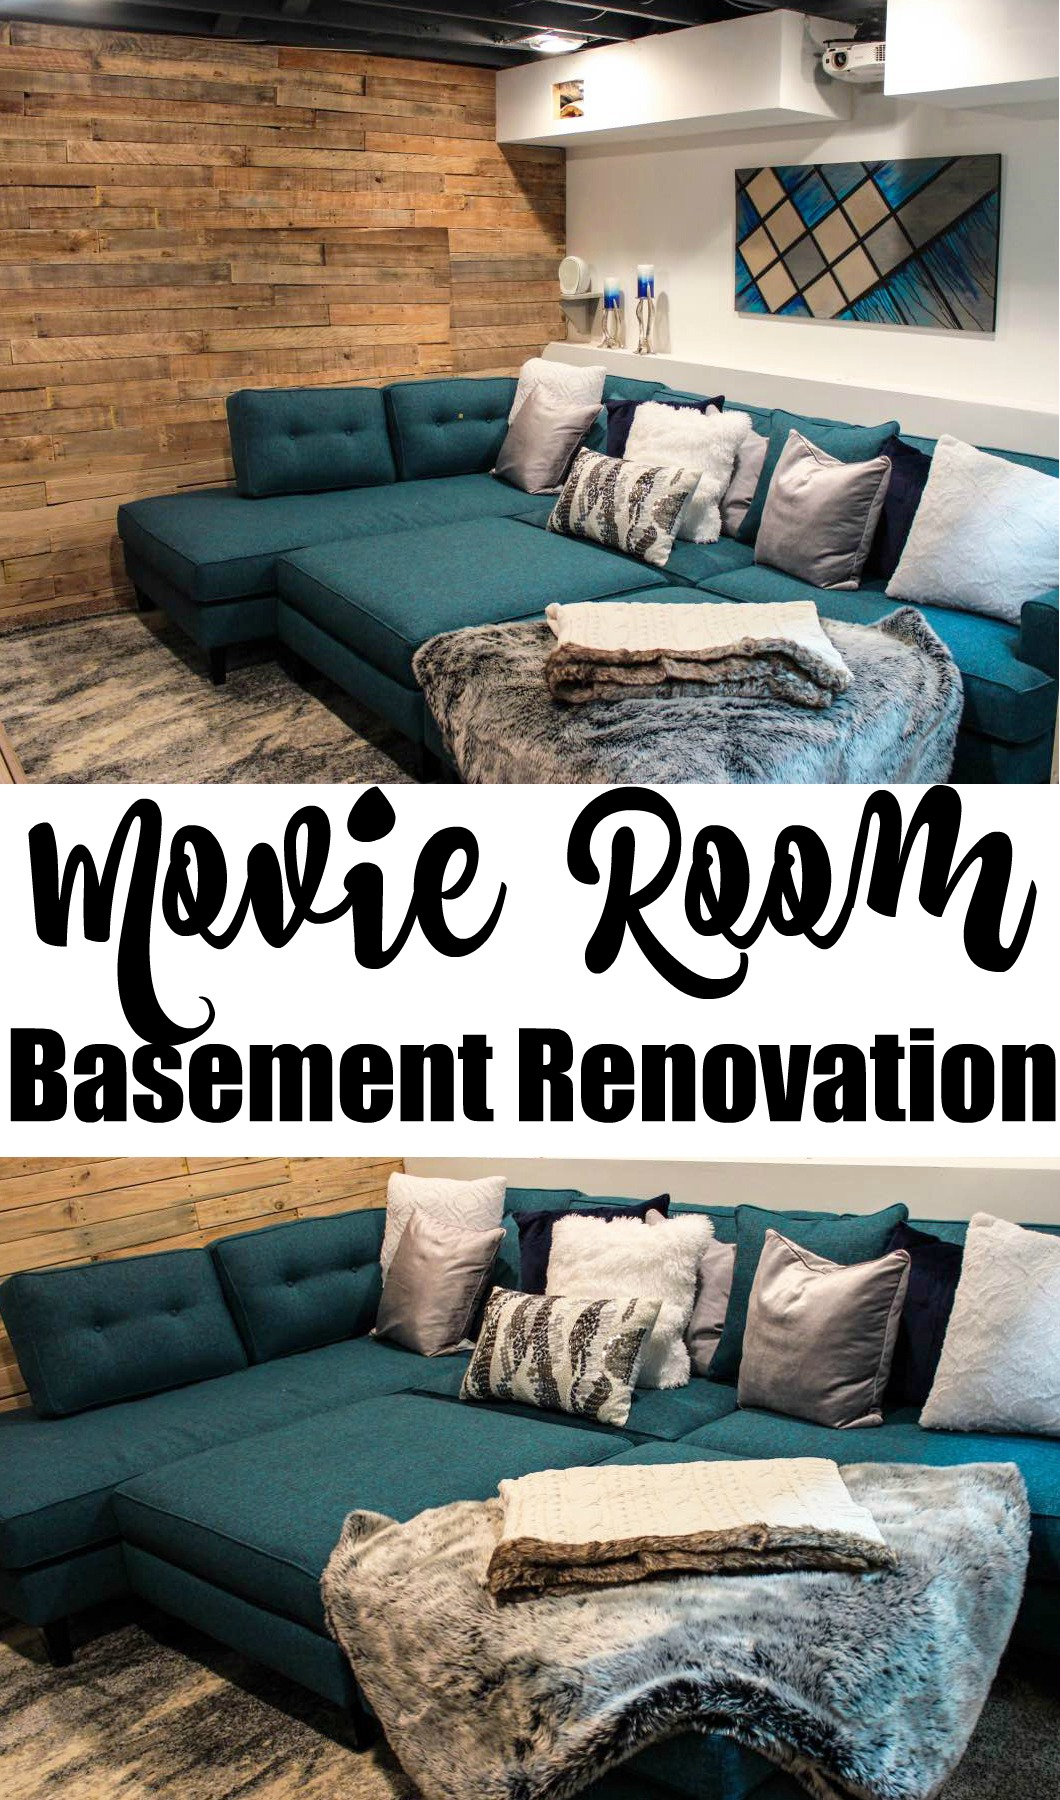 basementrenovationmovieroom